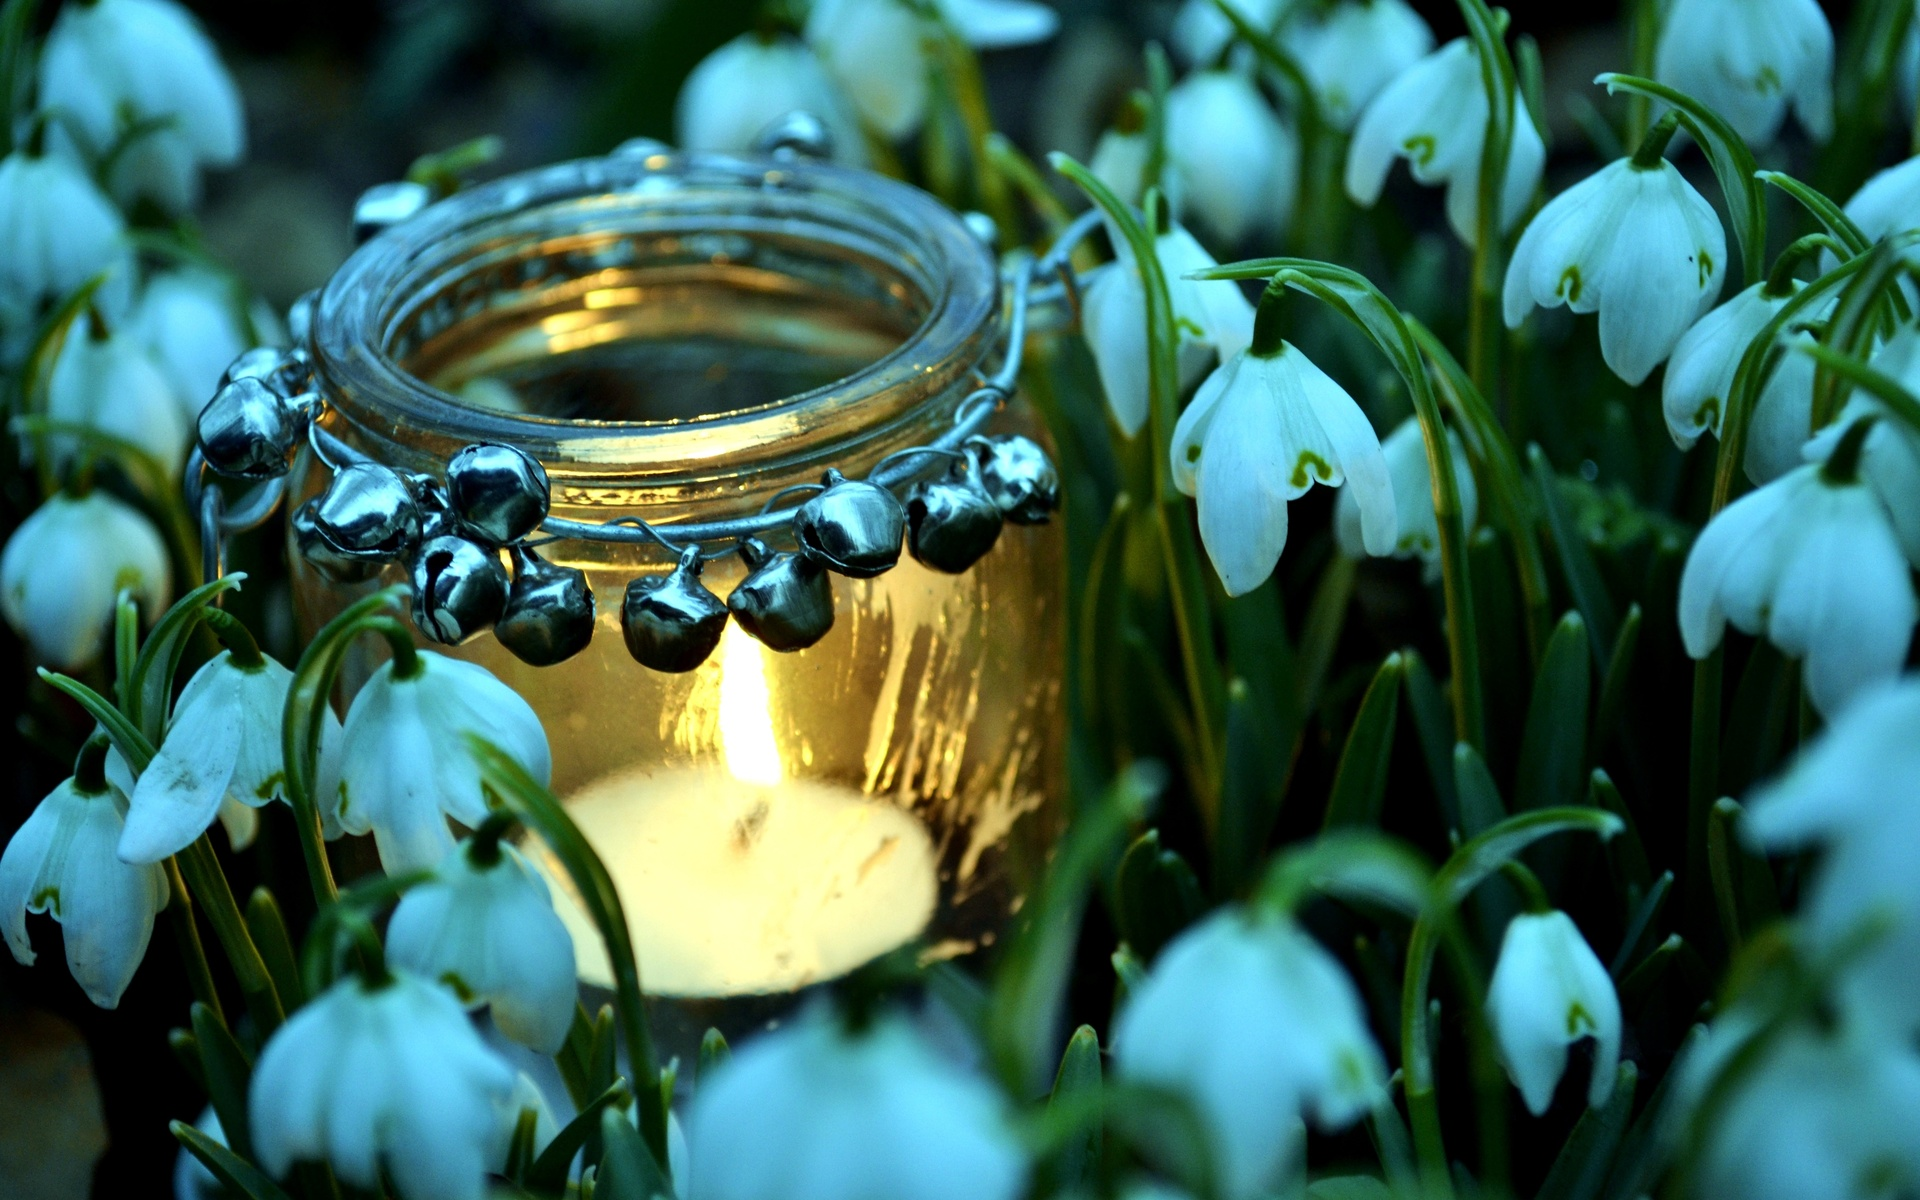 Pretty jar wallpaper 39478 1920x1200 px for Pretty wallpaper for walls